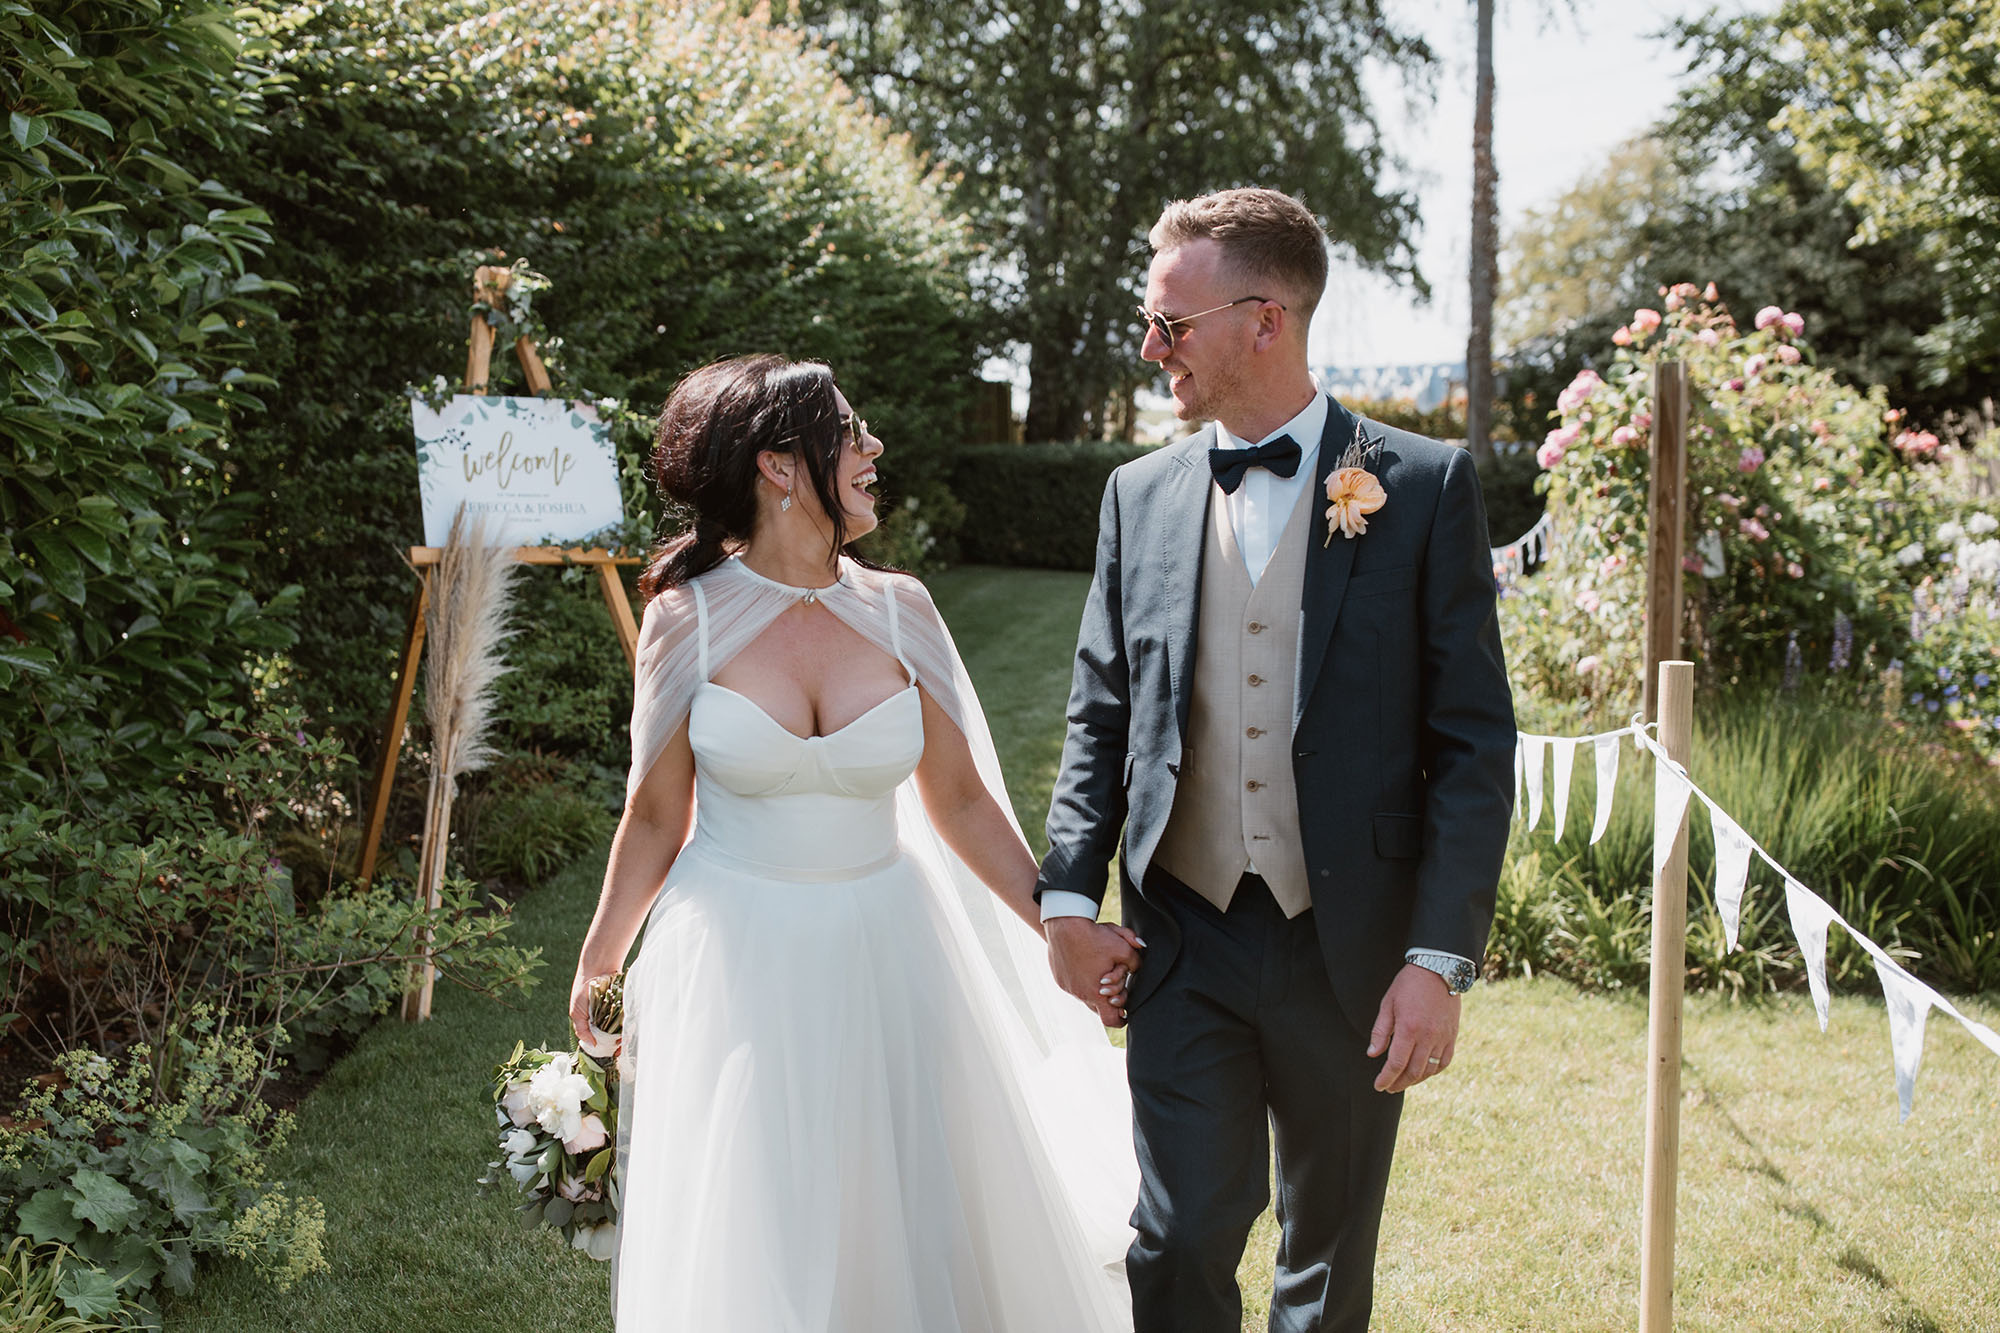 A bride and groom walk hand in hand in a garden. There's a welcome sign behind them. She's wearing a white scrappy dress and sheer cape. He's in a dark grey suit with bowtie. Wedding image by Luke Hayden Photography